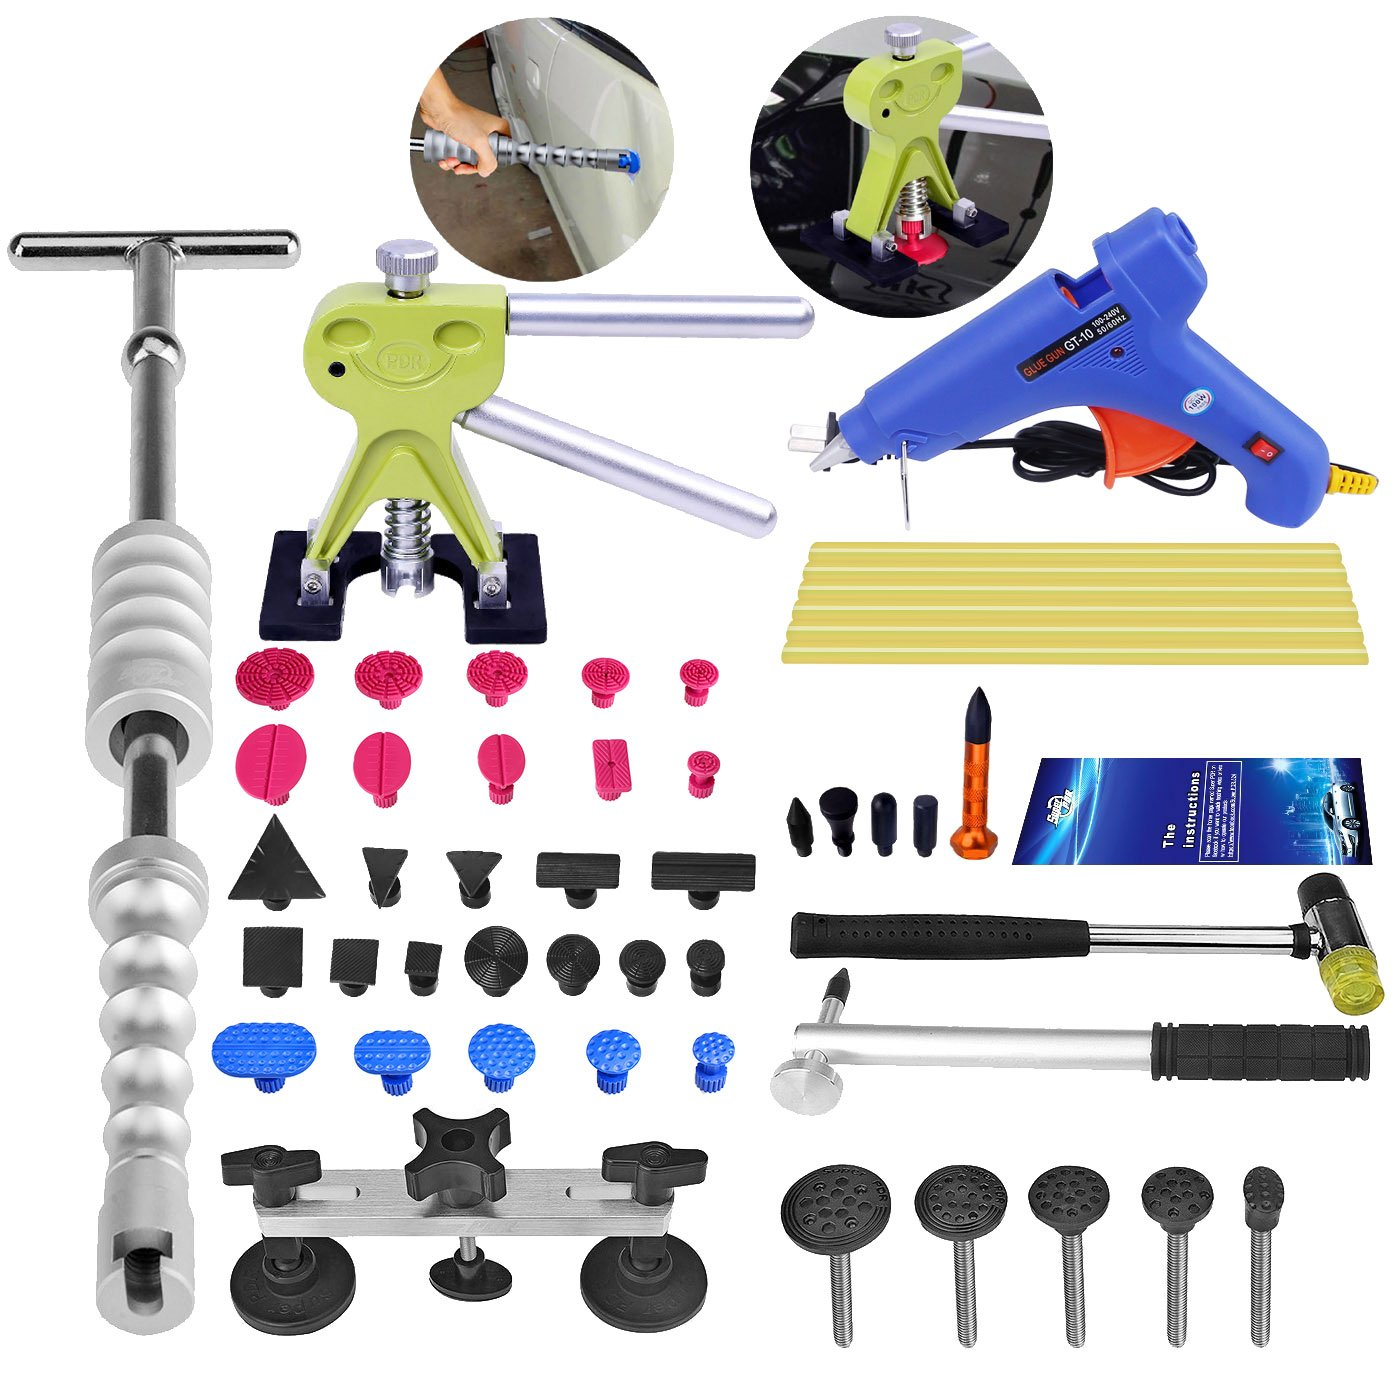 Super PDR 40pcs Car Body Hail Ding Damdge Dent Repair Removal Tool Kits Silde Hammer Glue Puller Tool Kits by Super PDR (Image #8)